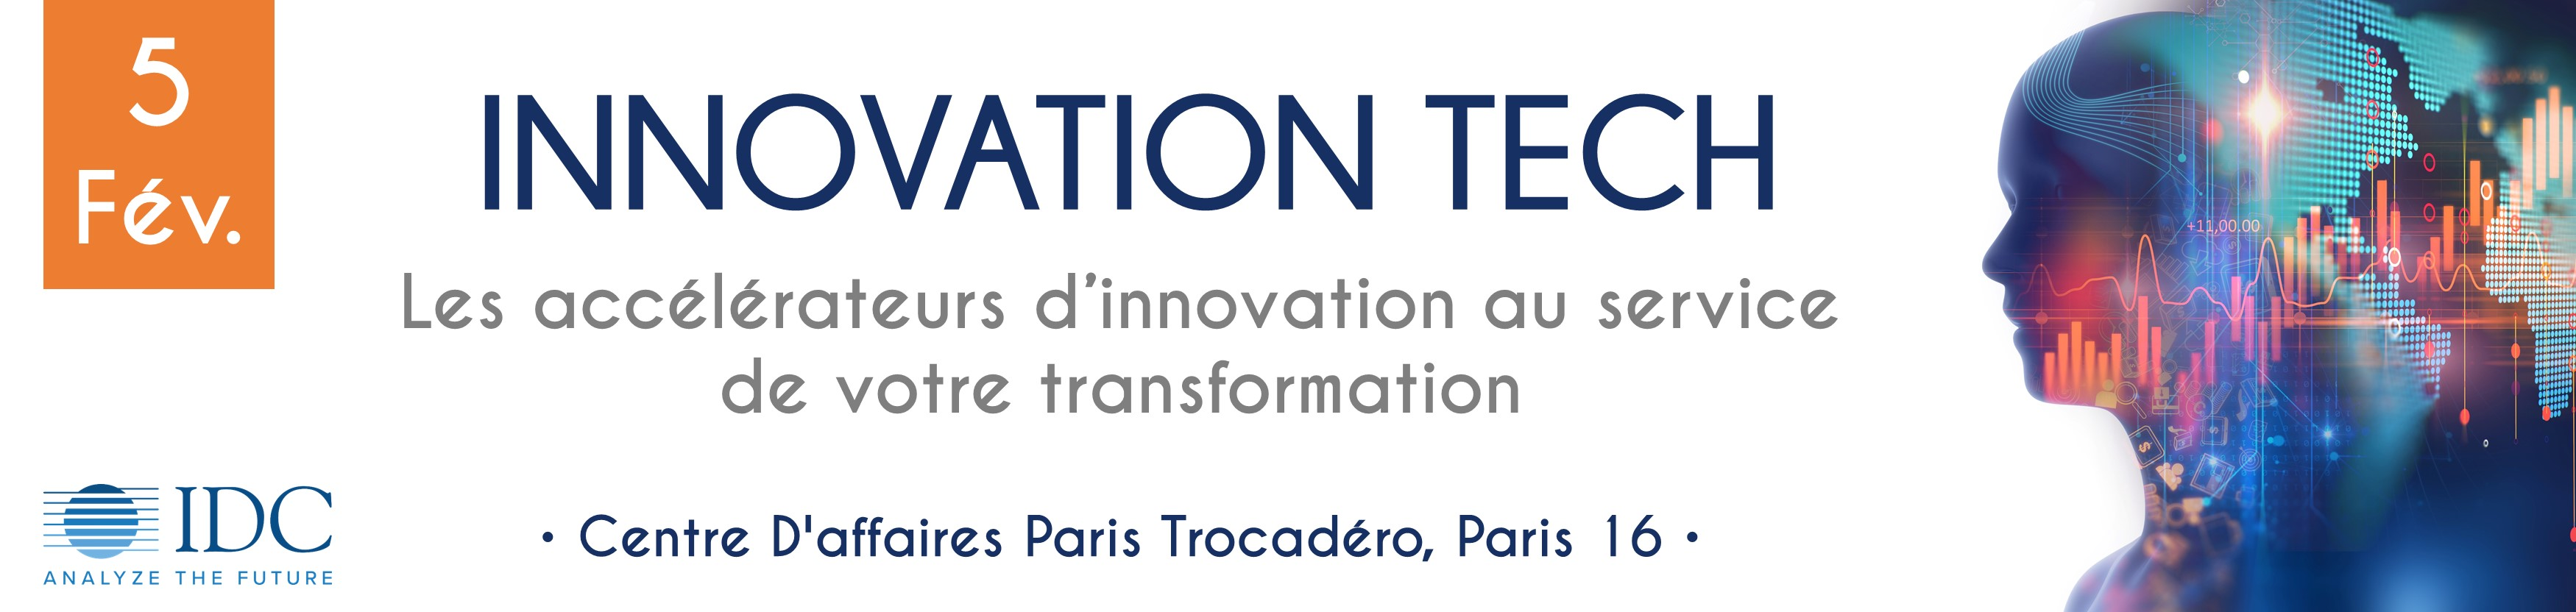 Conference IDC - Innovation Tech - 5 fevrier 2019